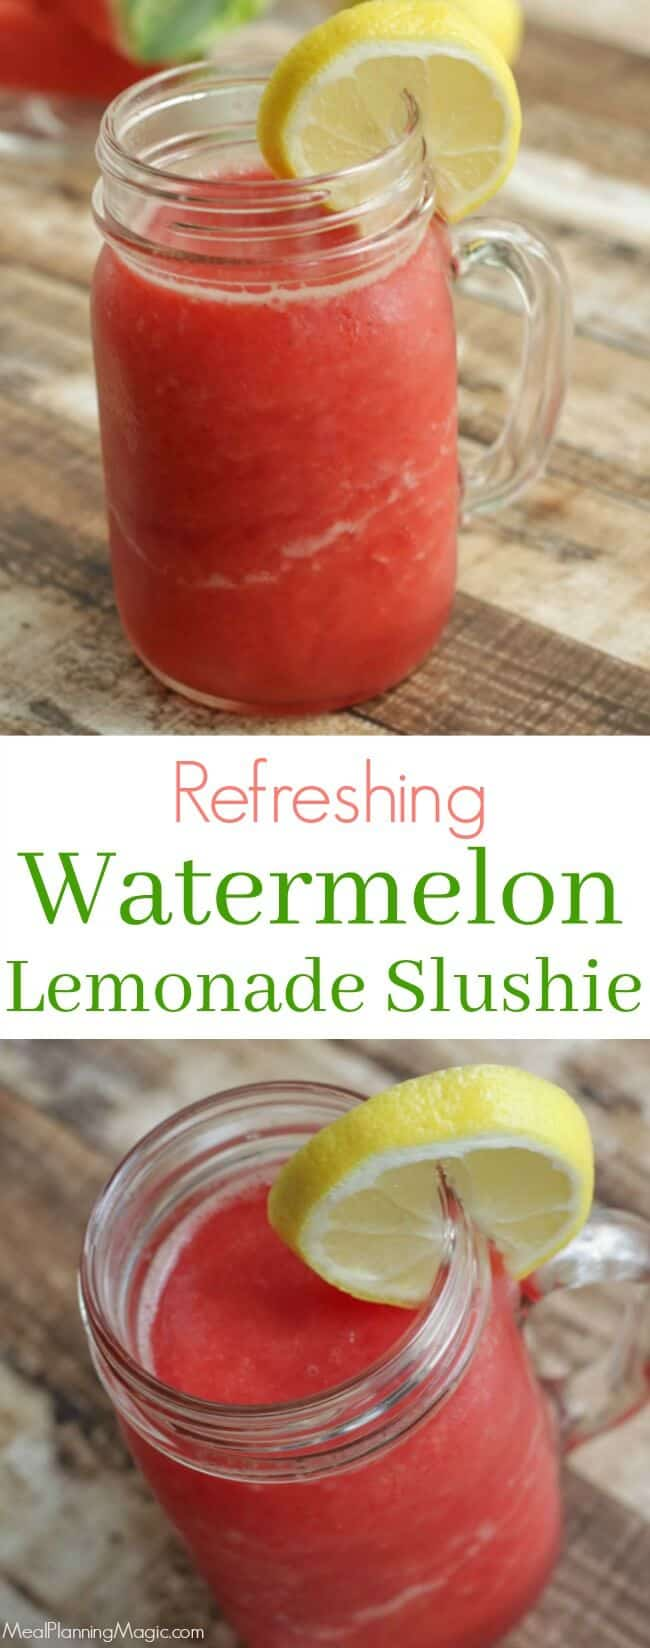 Refreshing and simple this Watermelon Lemonade Slushie is a great way to use up leftover watermelon. Best of all, it's make ahead so enjoy anytime! Get the recipe at MealPlanningMagic .com